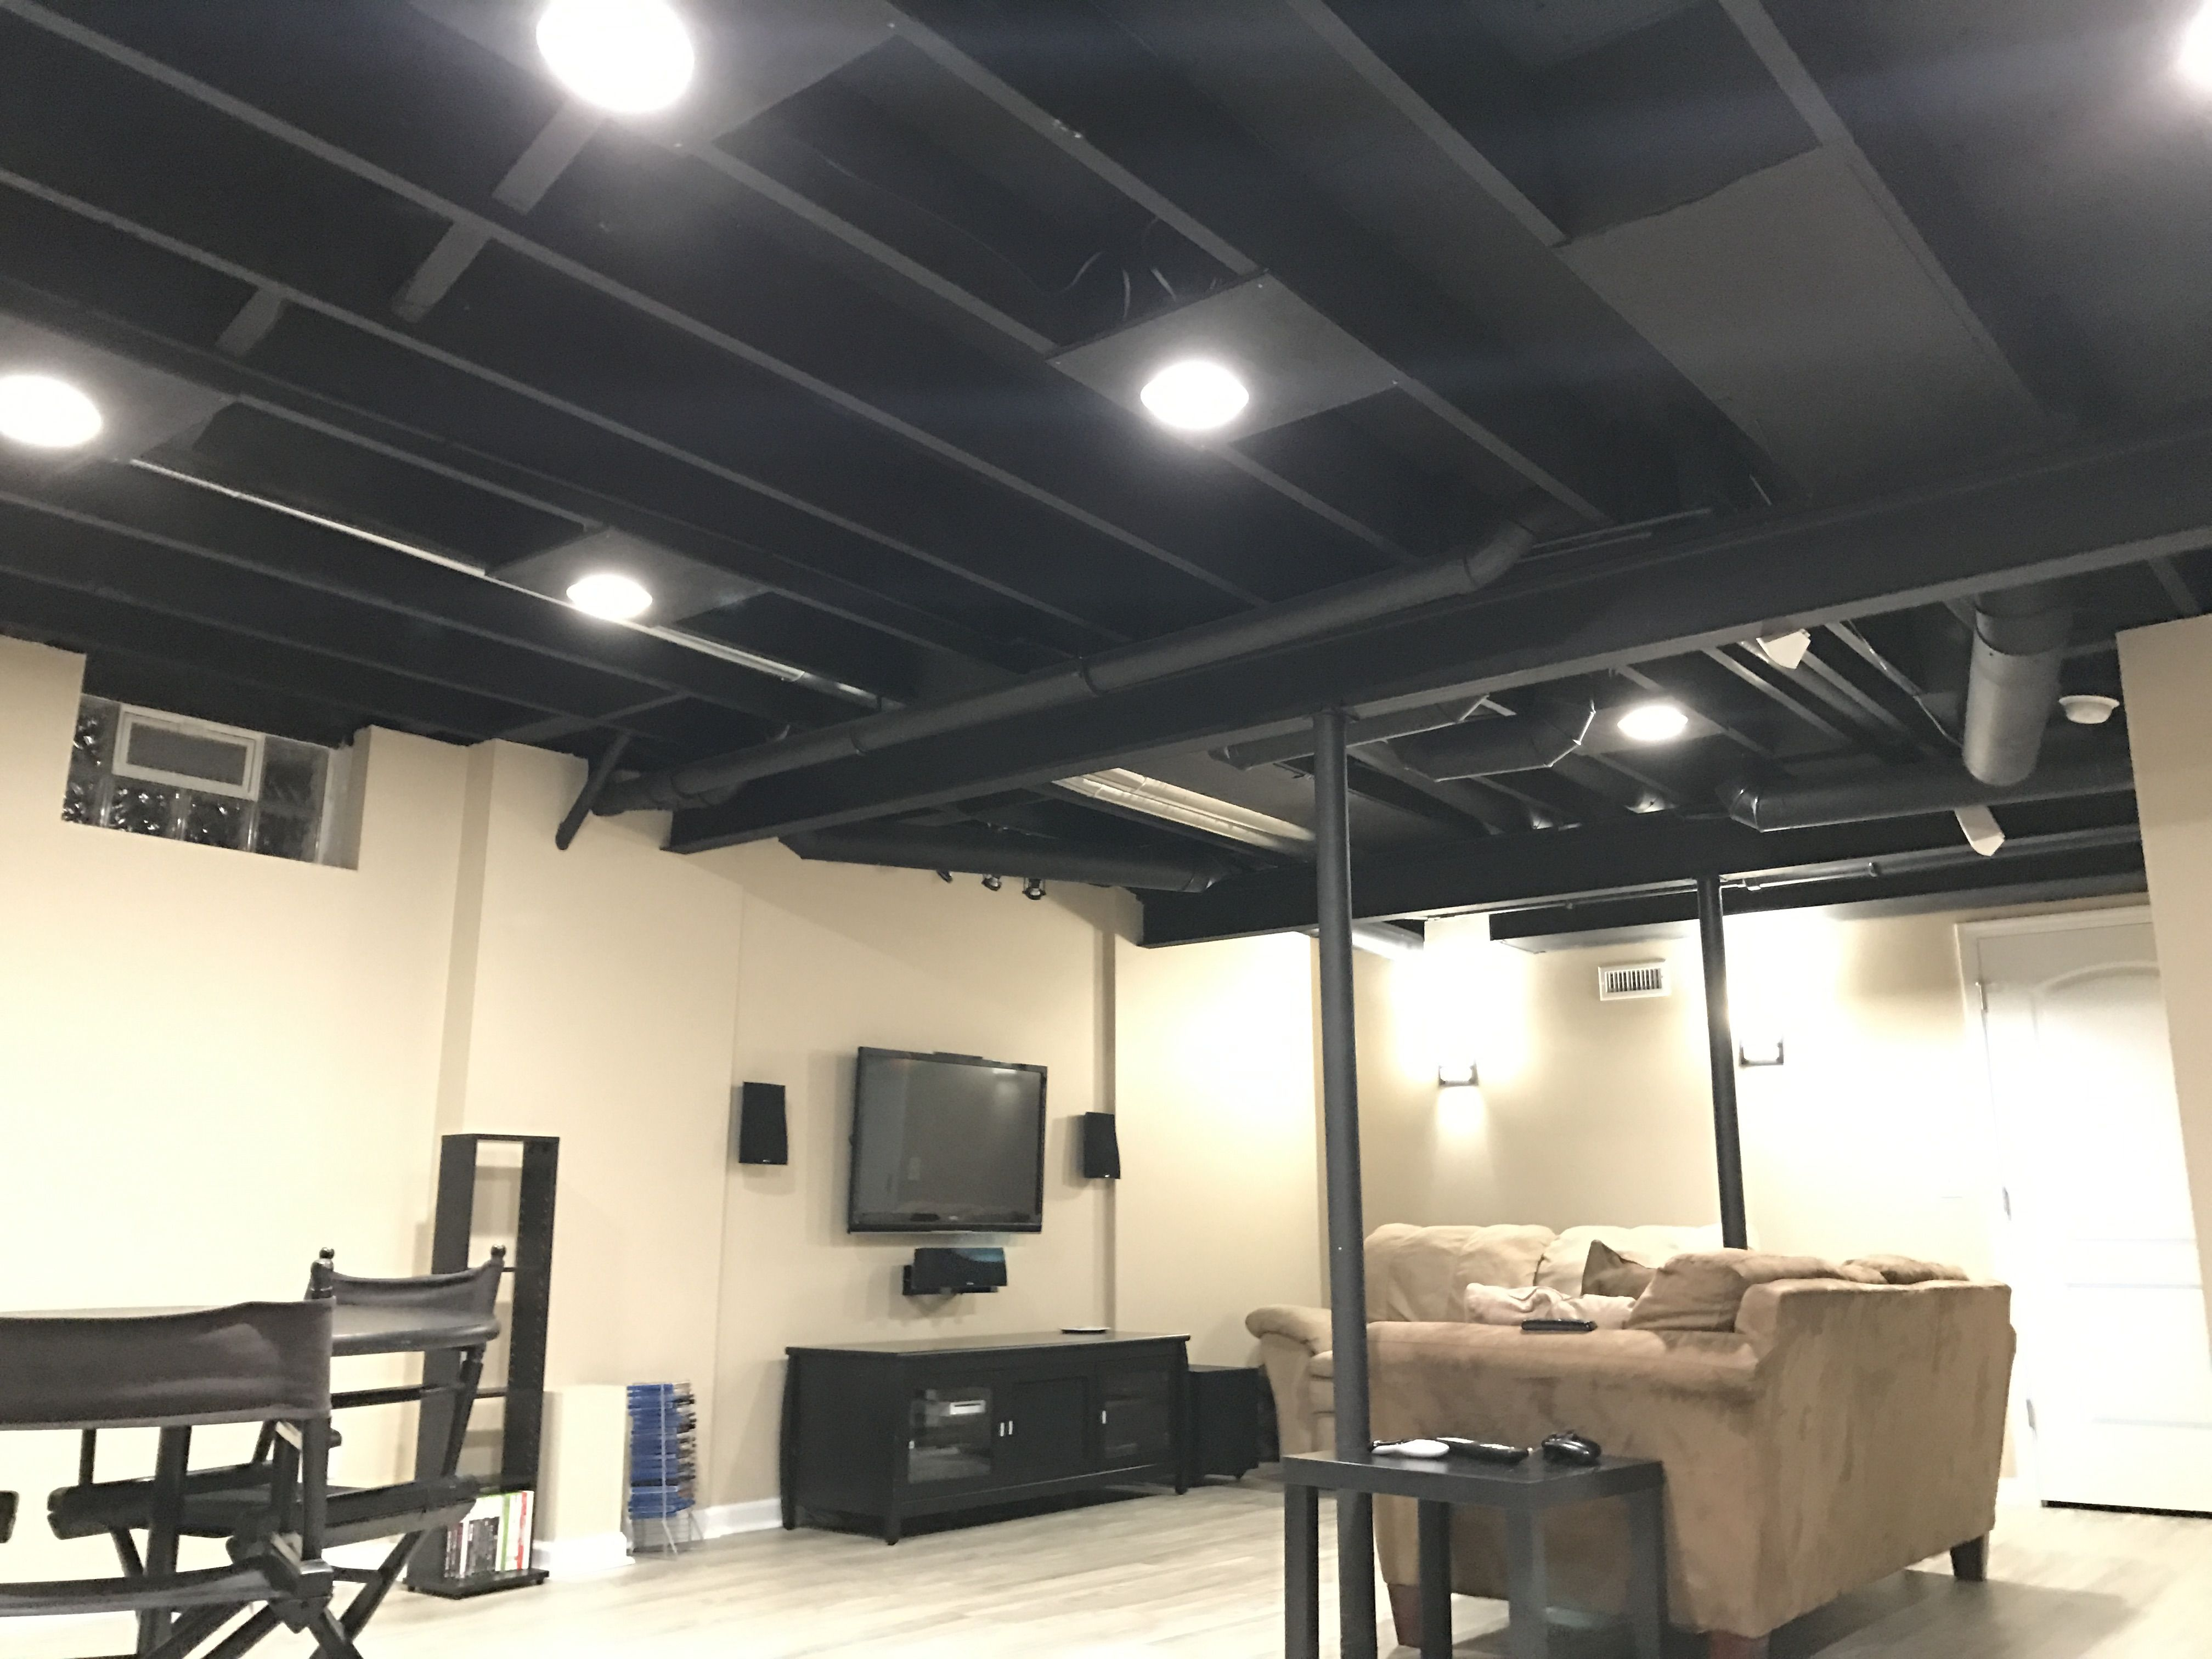 Exposed basement ceiling painted black. Plywood added